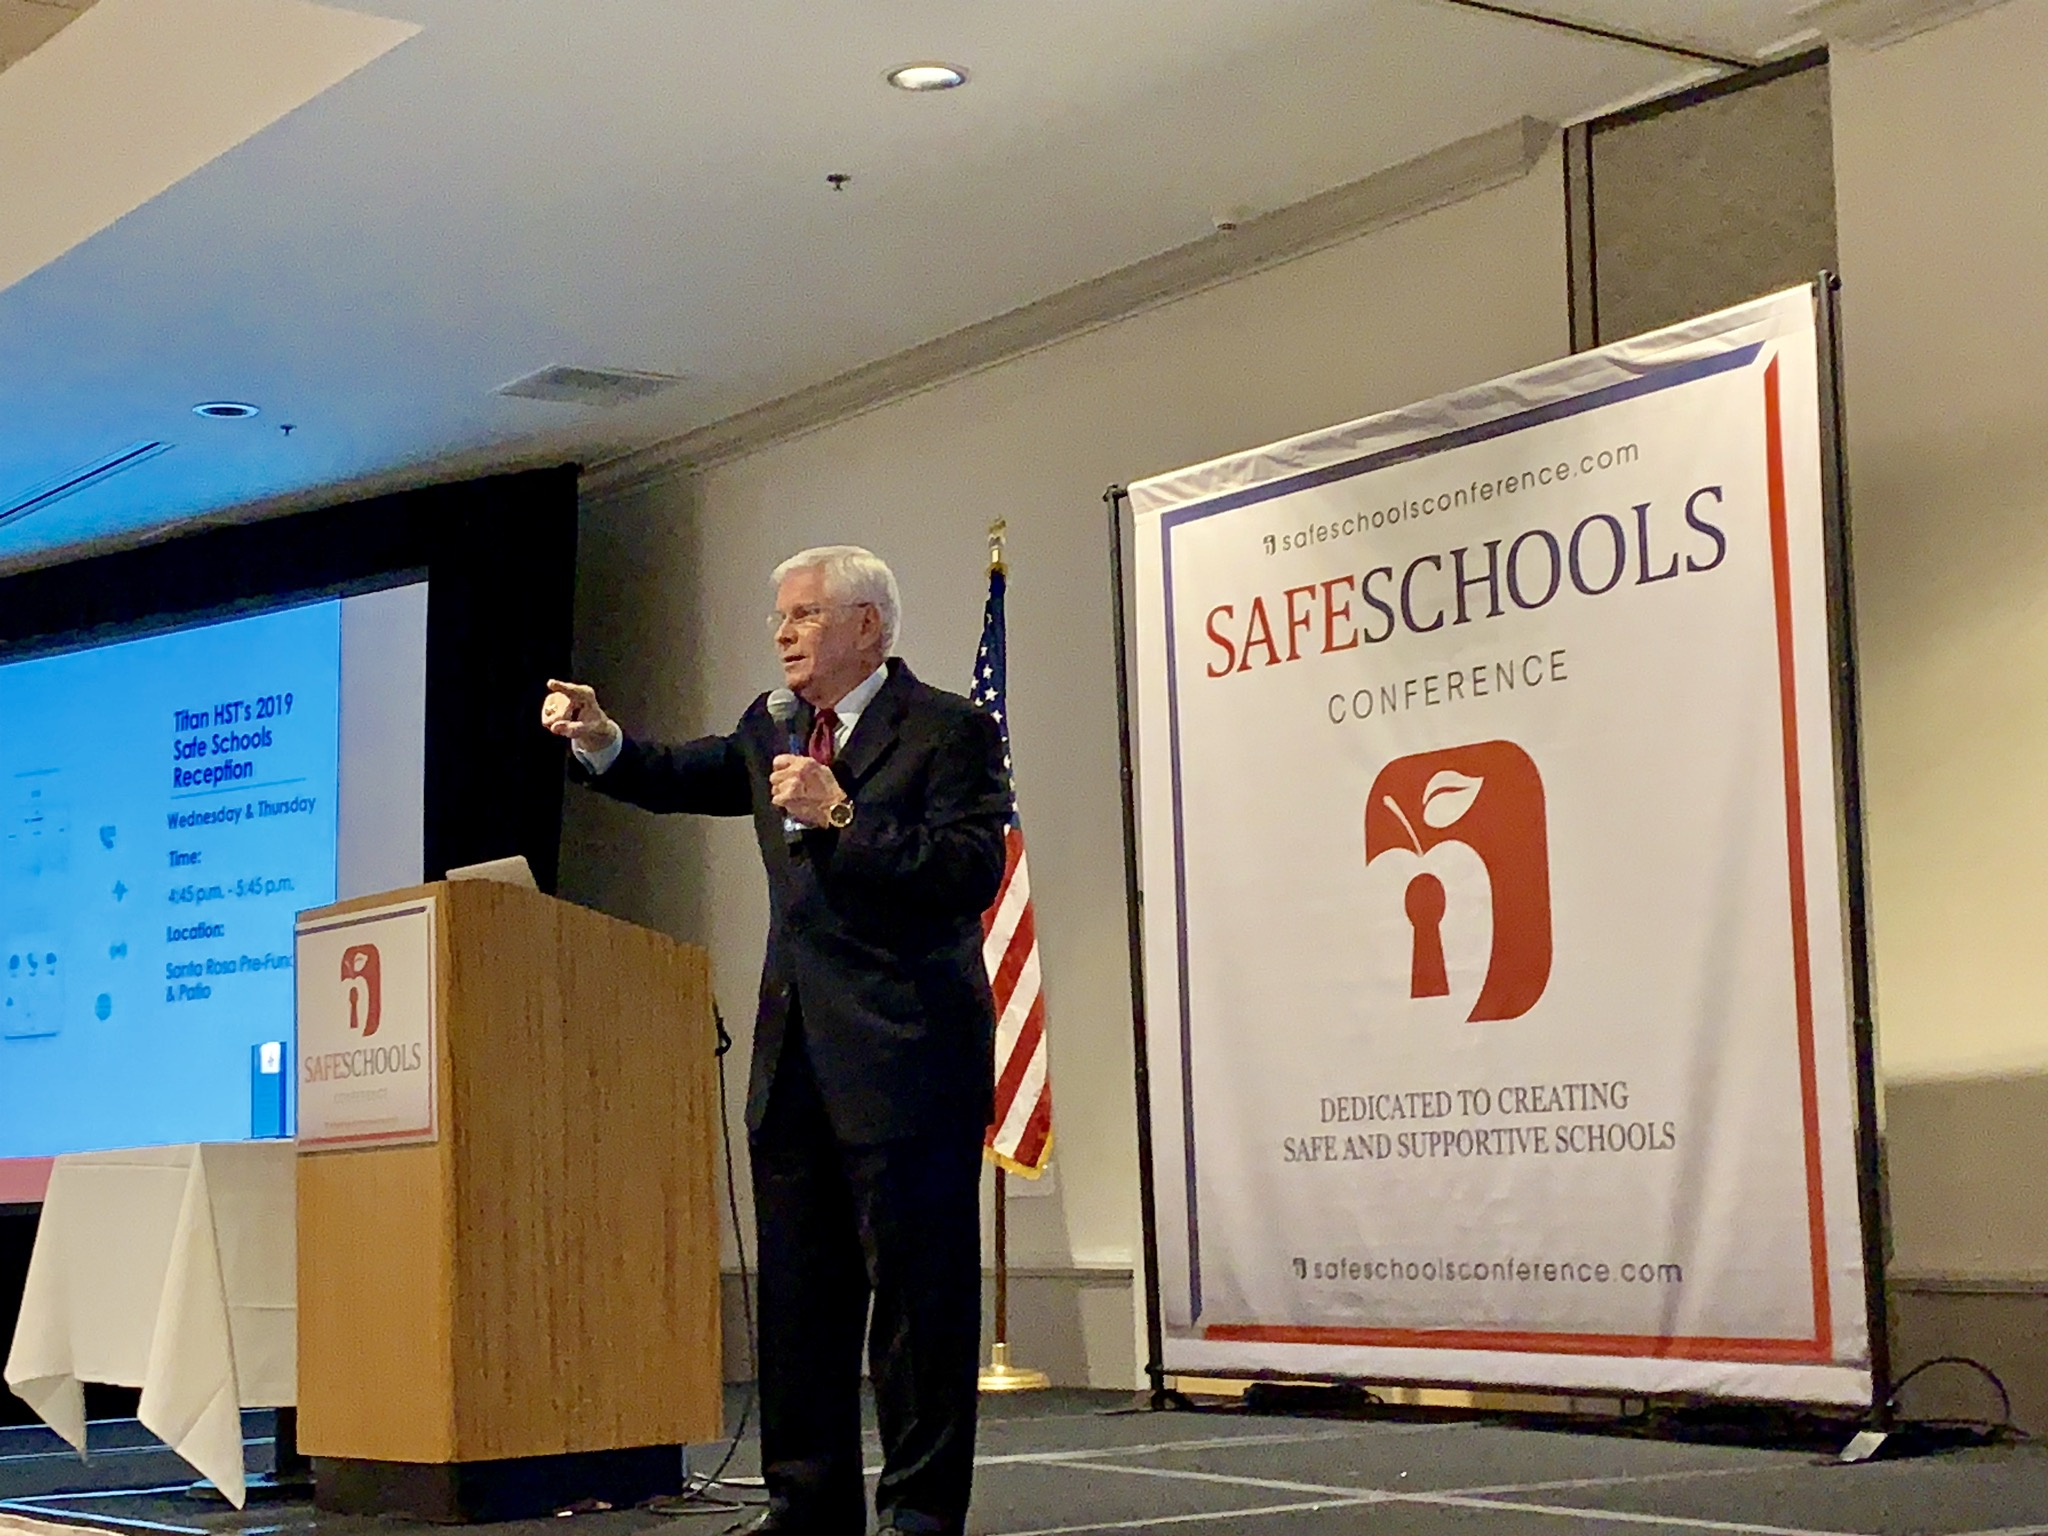 Educators, law enforcement officials gather in OC for school safety conference